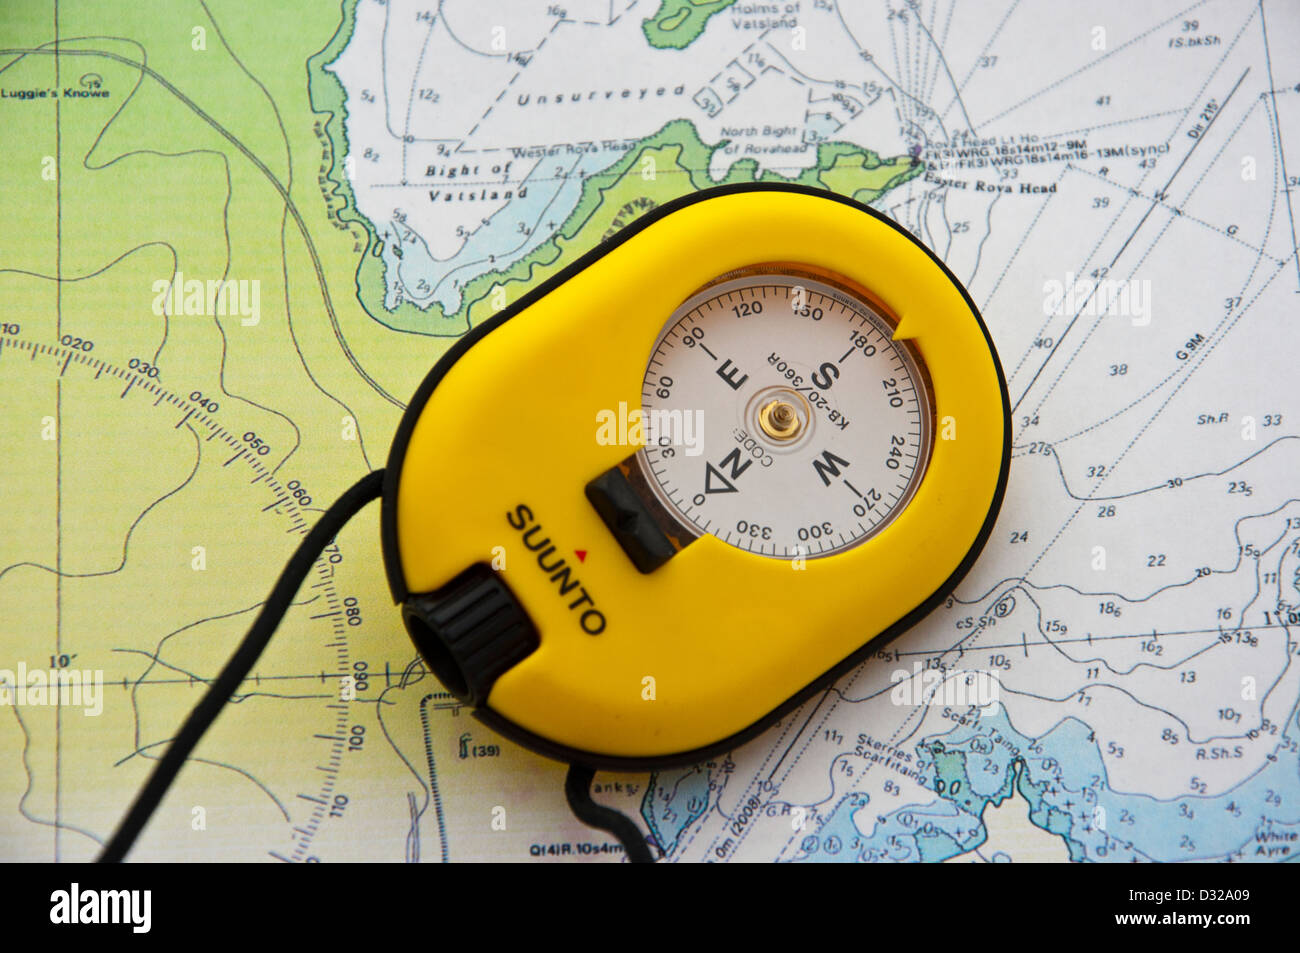 marine sighting compass - Stock Image